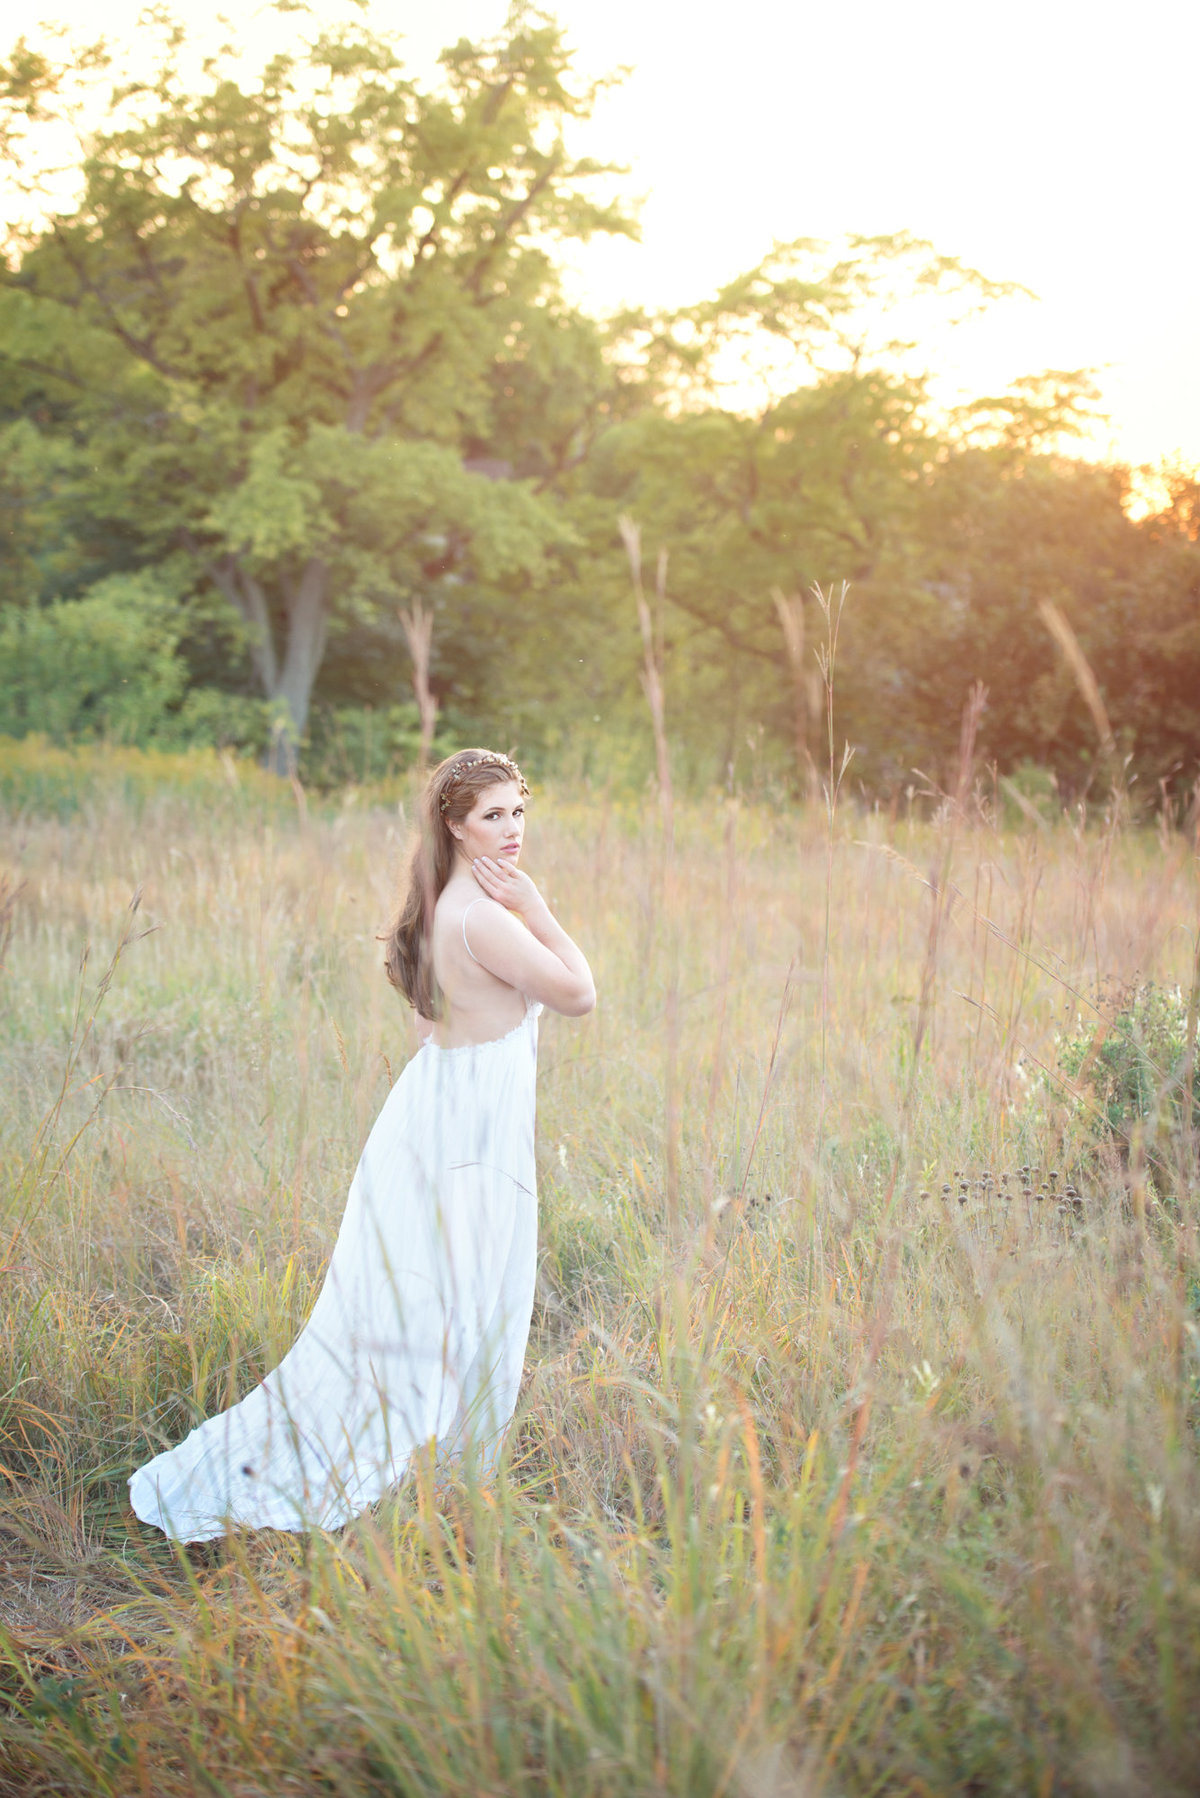 Fantasy whimsical senior portrait photographer-1-4